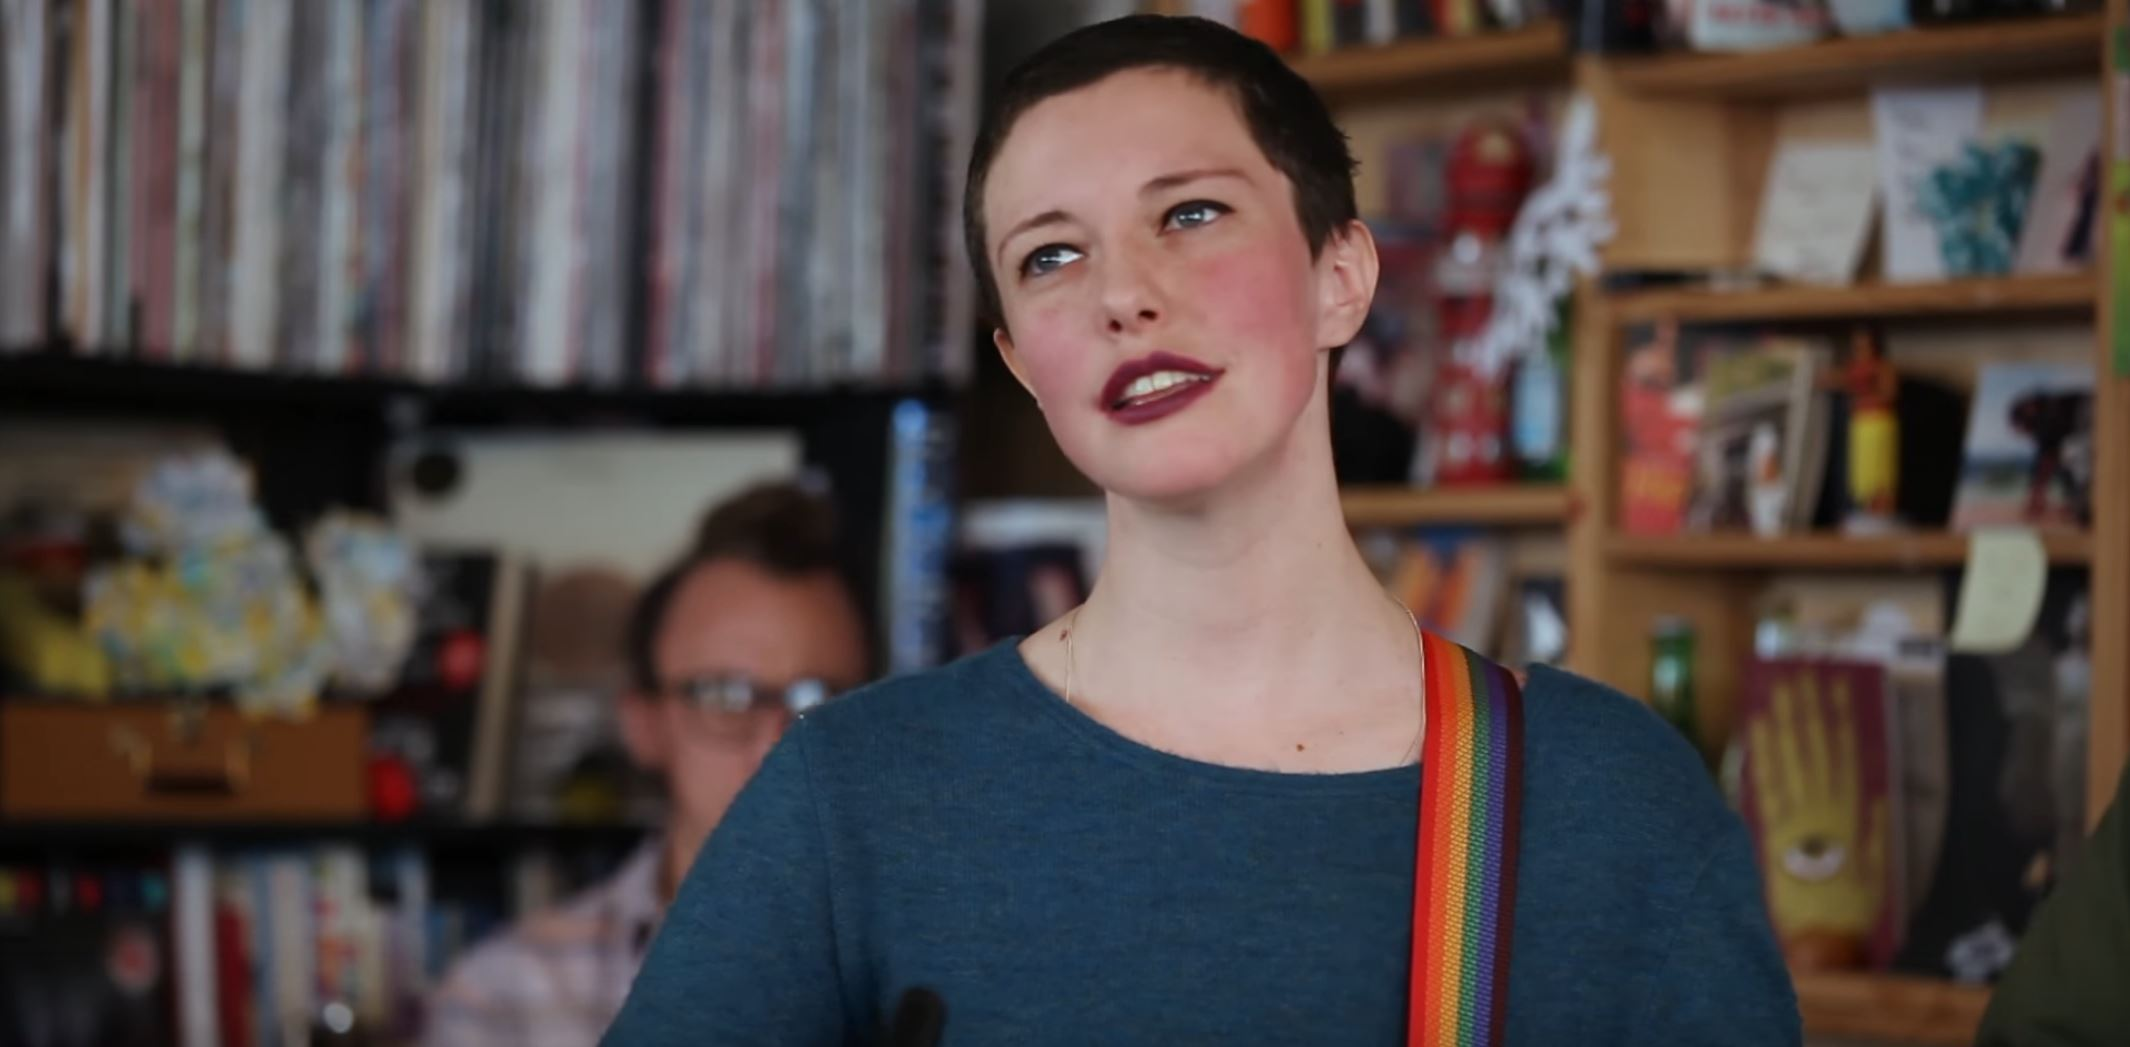 Check Out The Performance Of Esmé Patterson at NPR Music Tiny Desk Concert